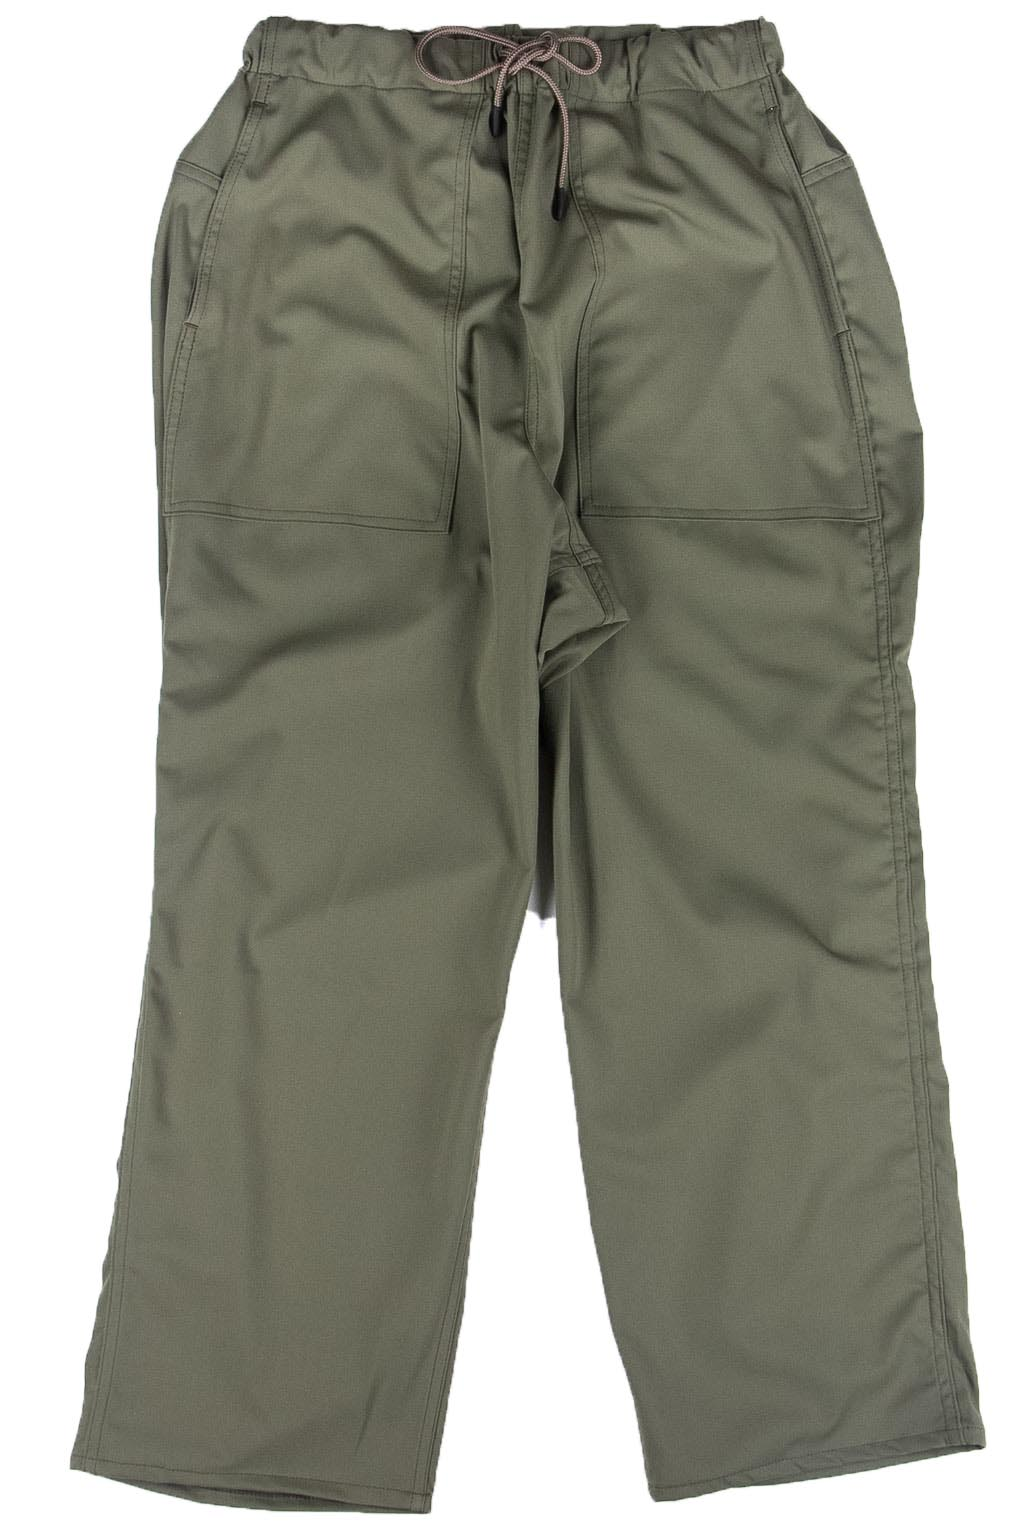 Manual Alphabet Easy Pants - Olive